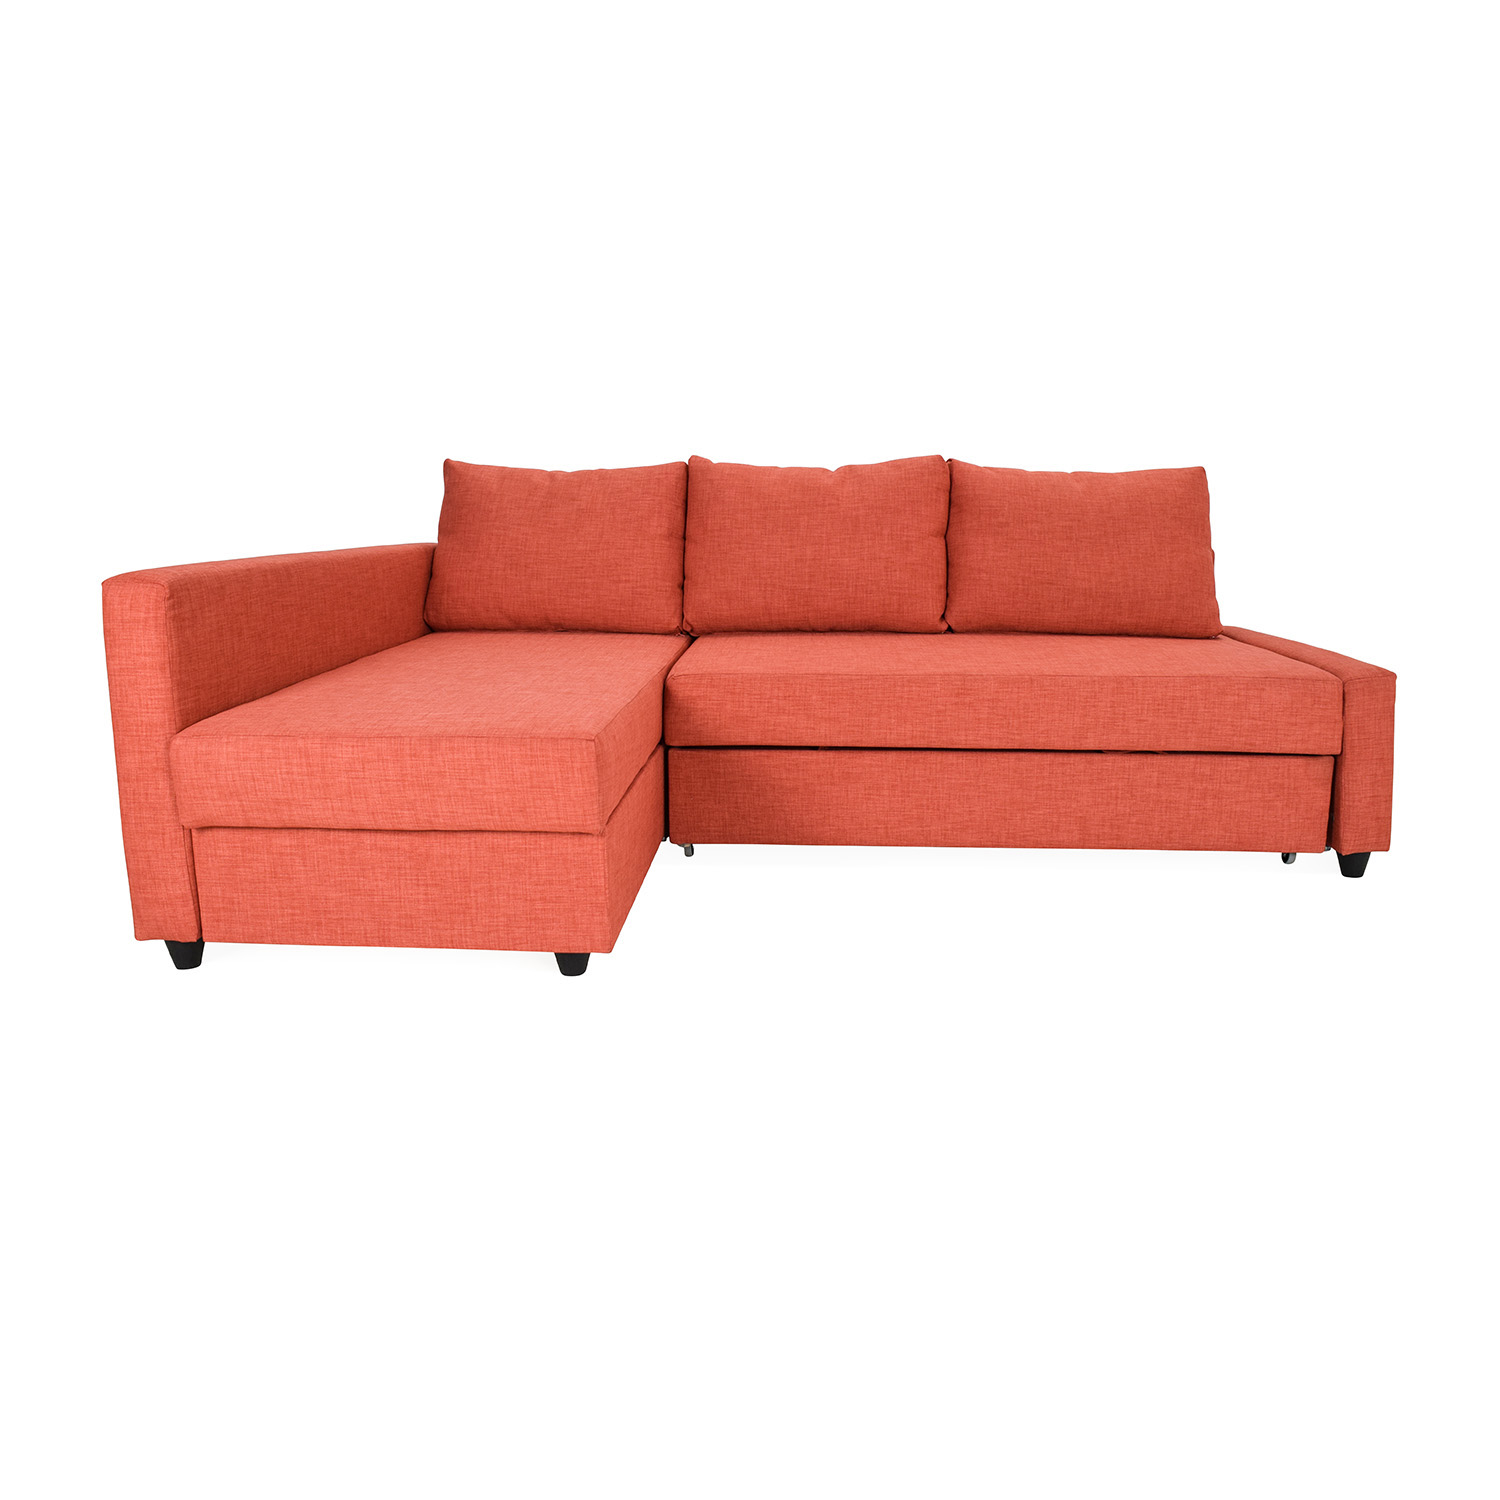 Superb 49 Off Ikea Friheten Sofa Bed With Chaise Sofas Bralicious Painted Fabric Chair Ideas Braliciousco